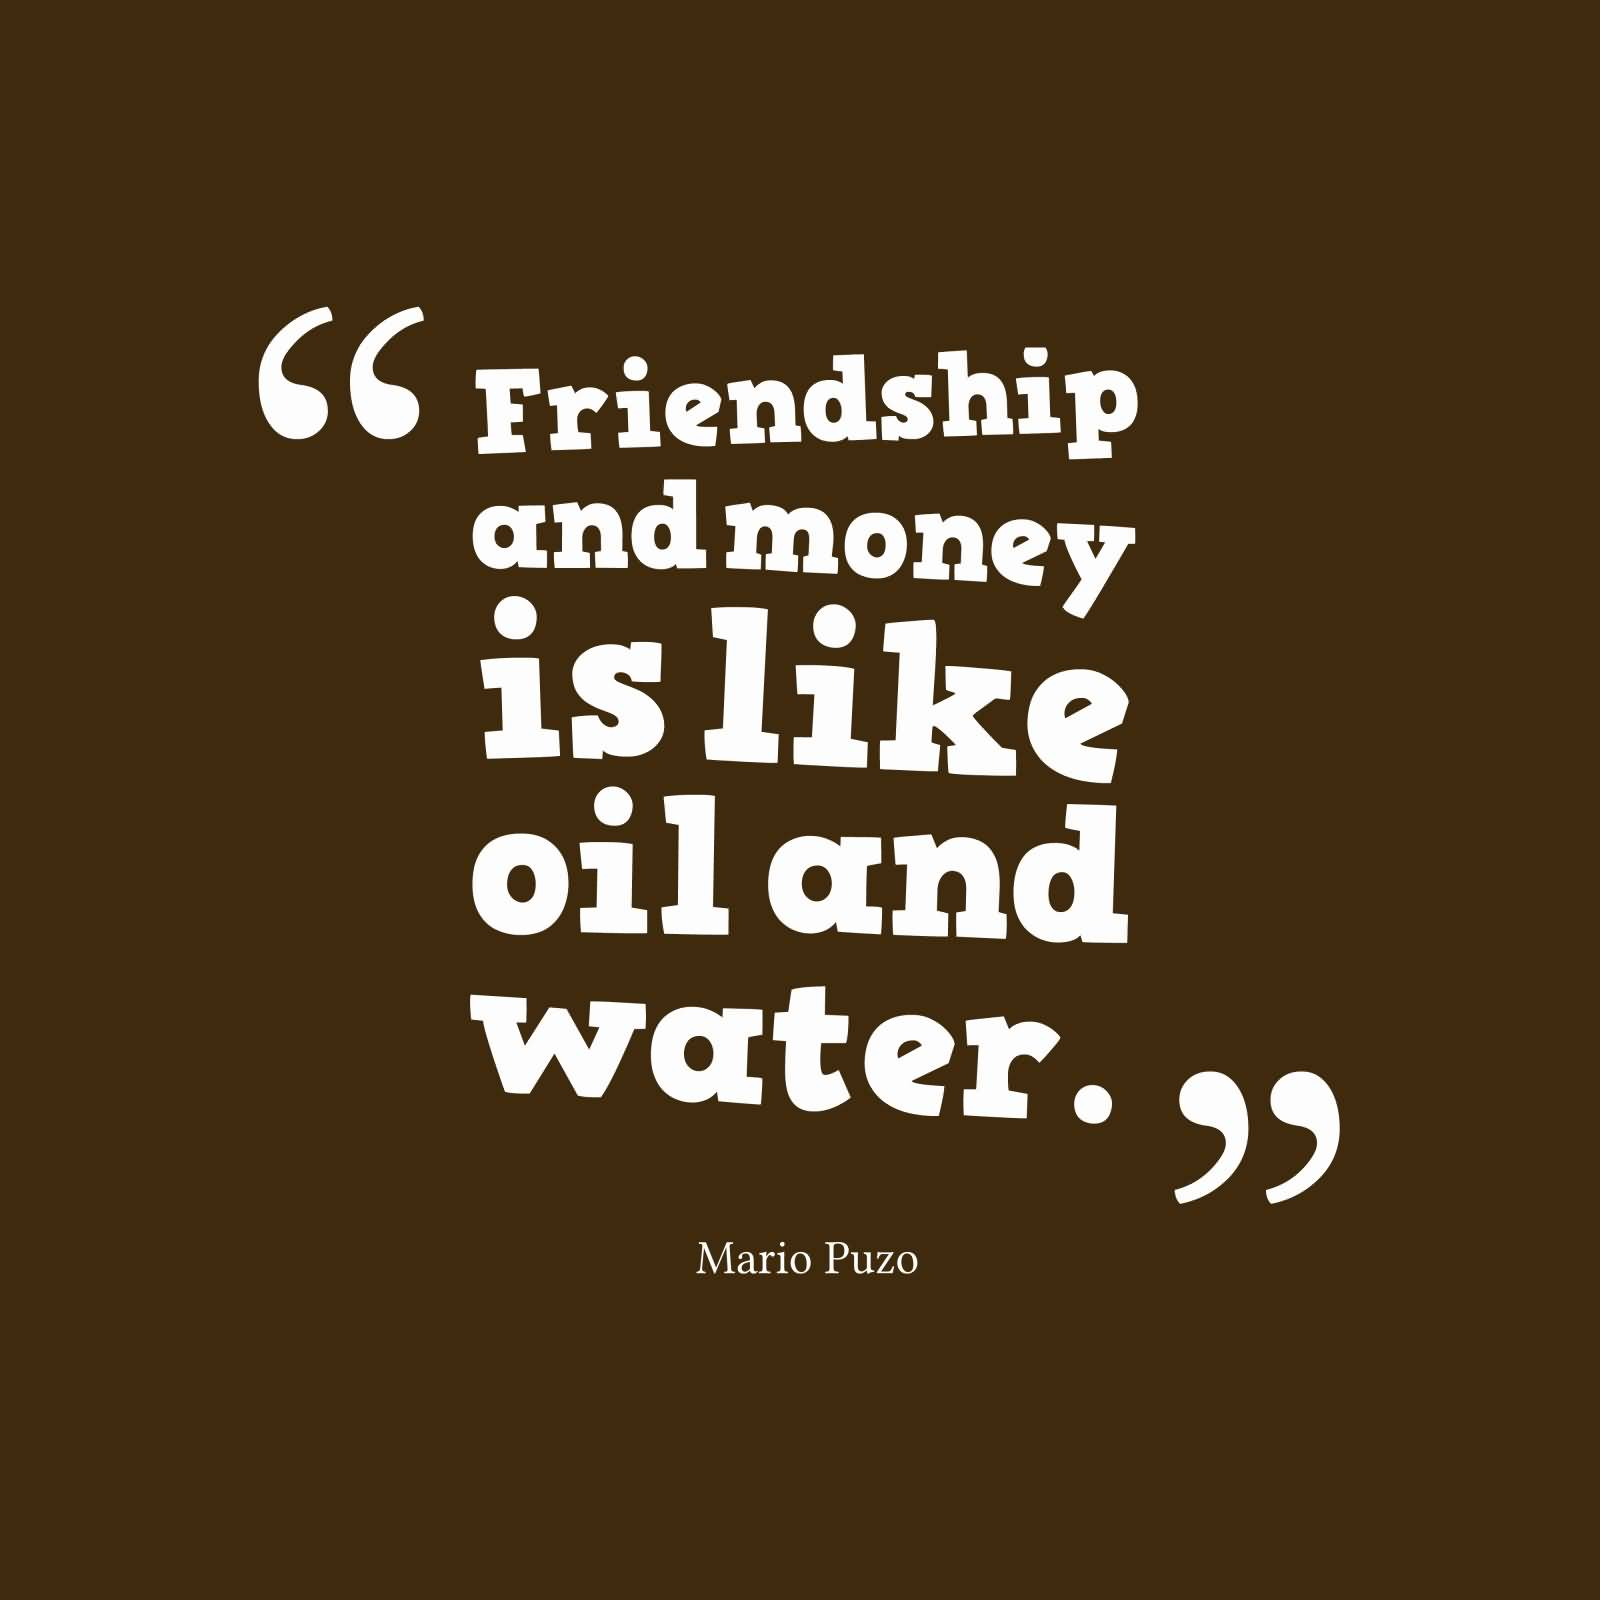 Money And Friends Quotes: 62 All Time Best Money Quotes And Sayings For Inspiration